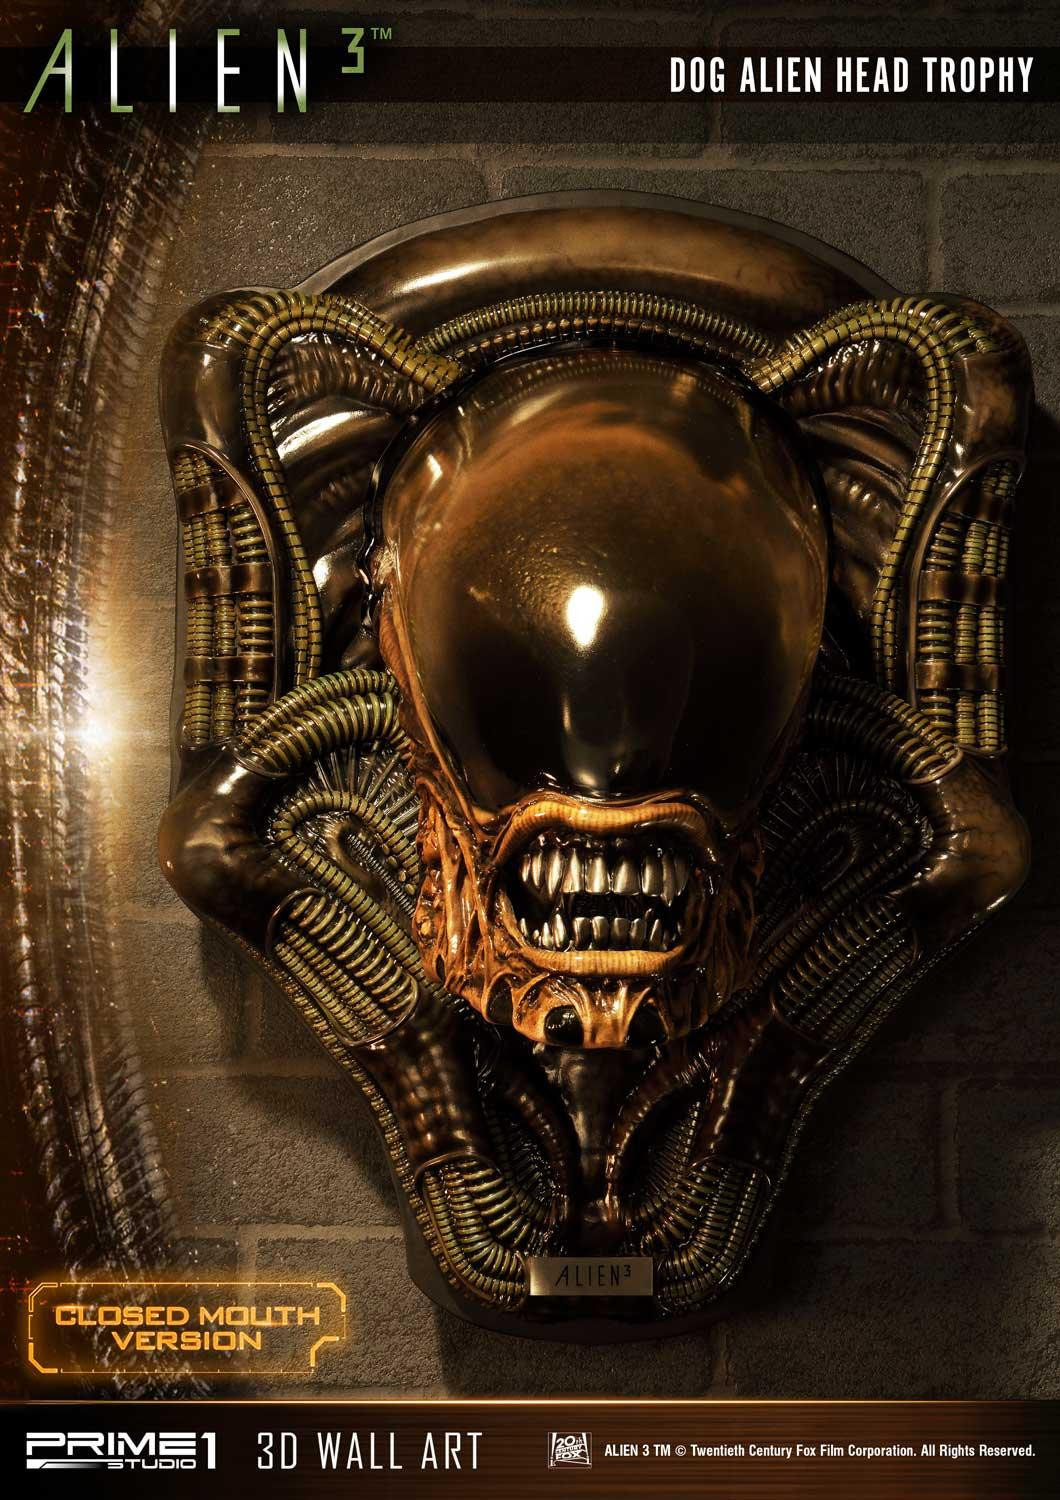 Alien 3 Dog Head Trophy Mounts Available from Prime 1 Studio